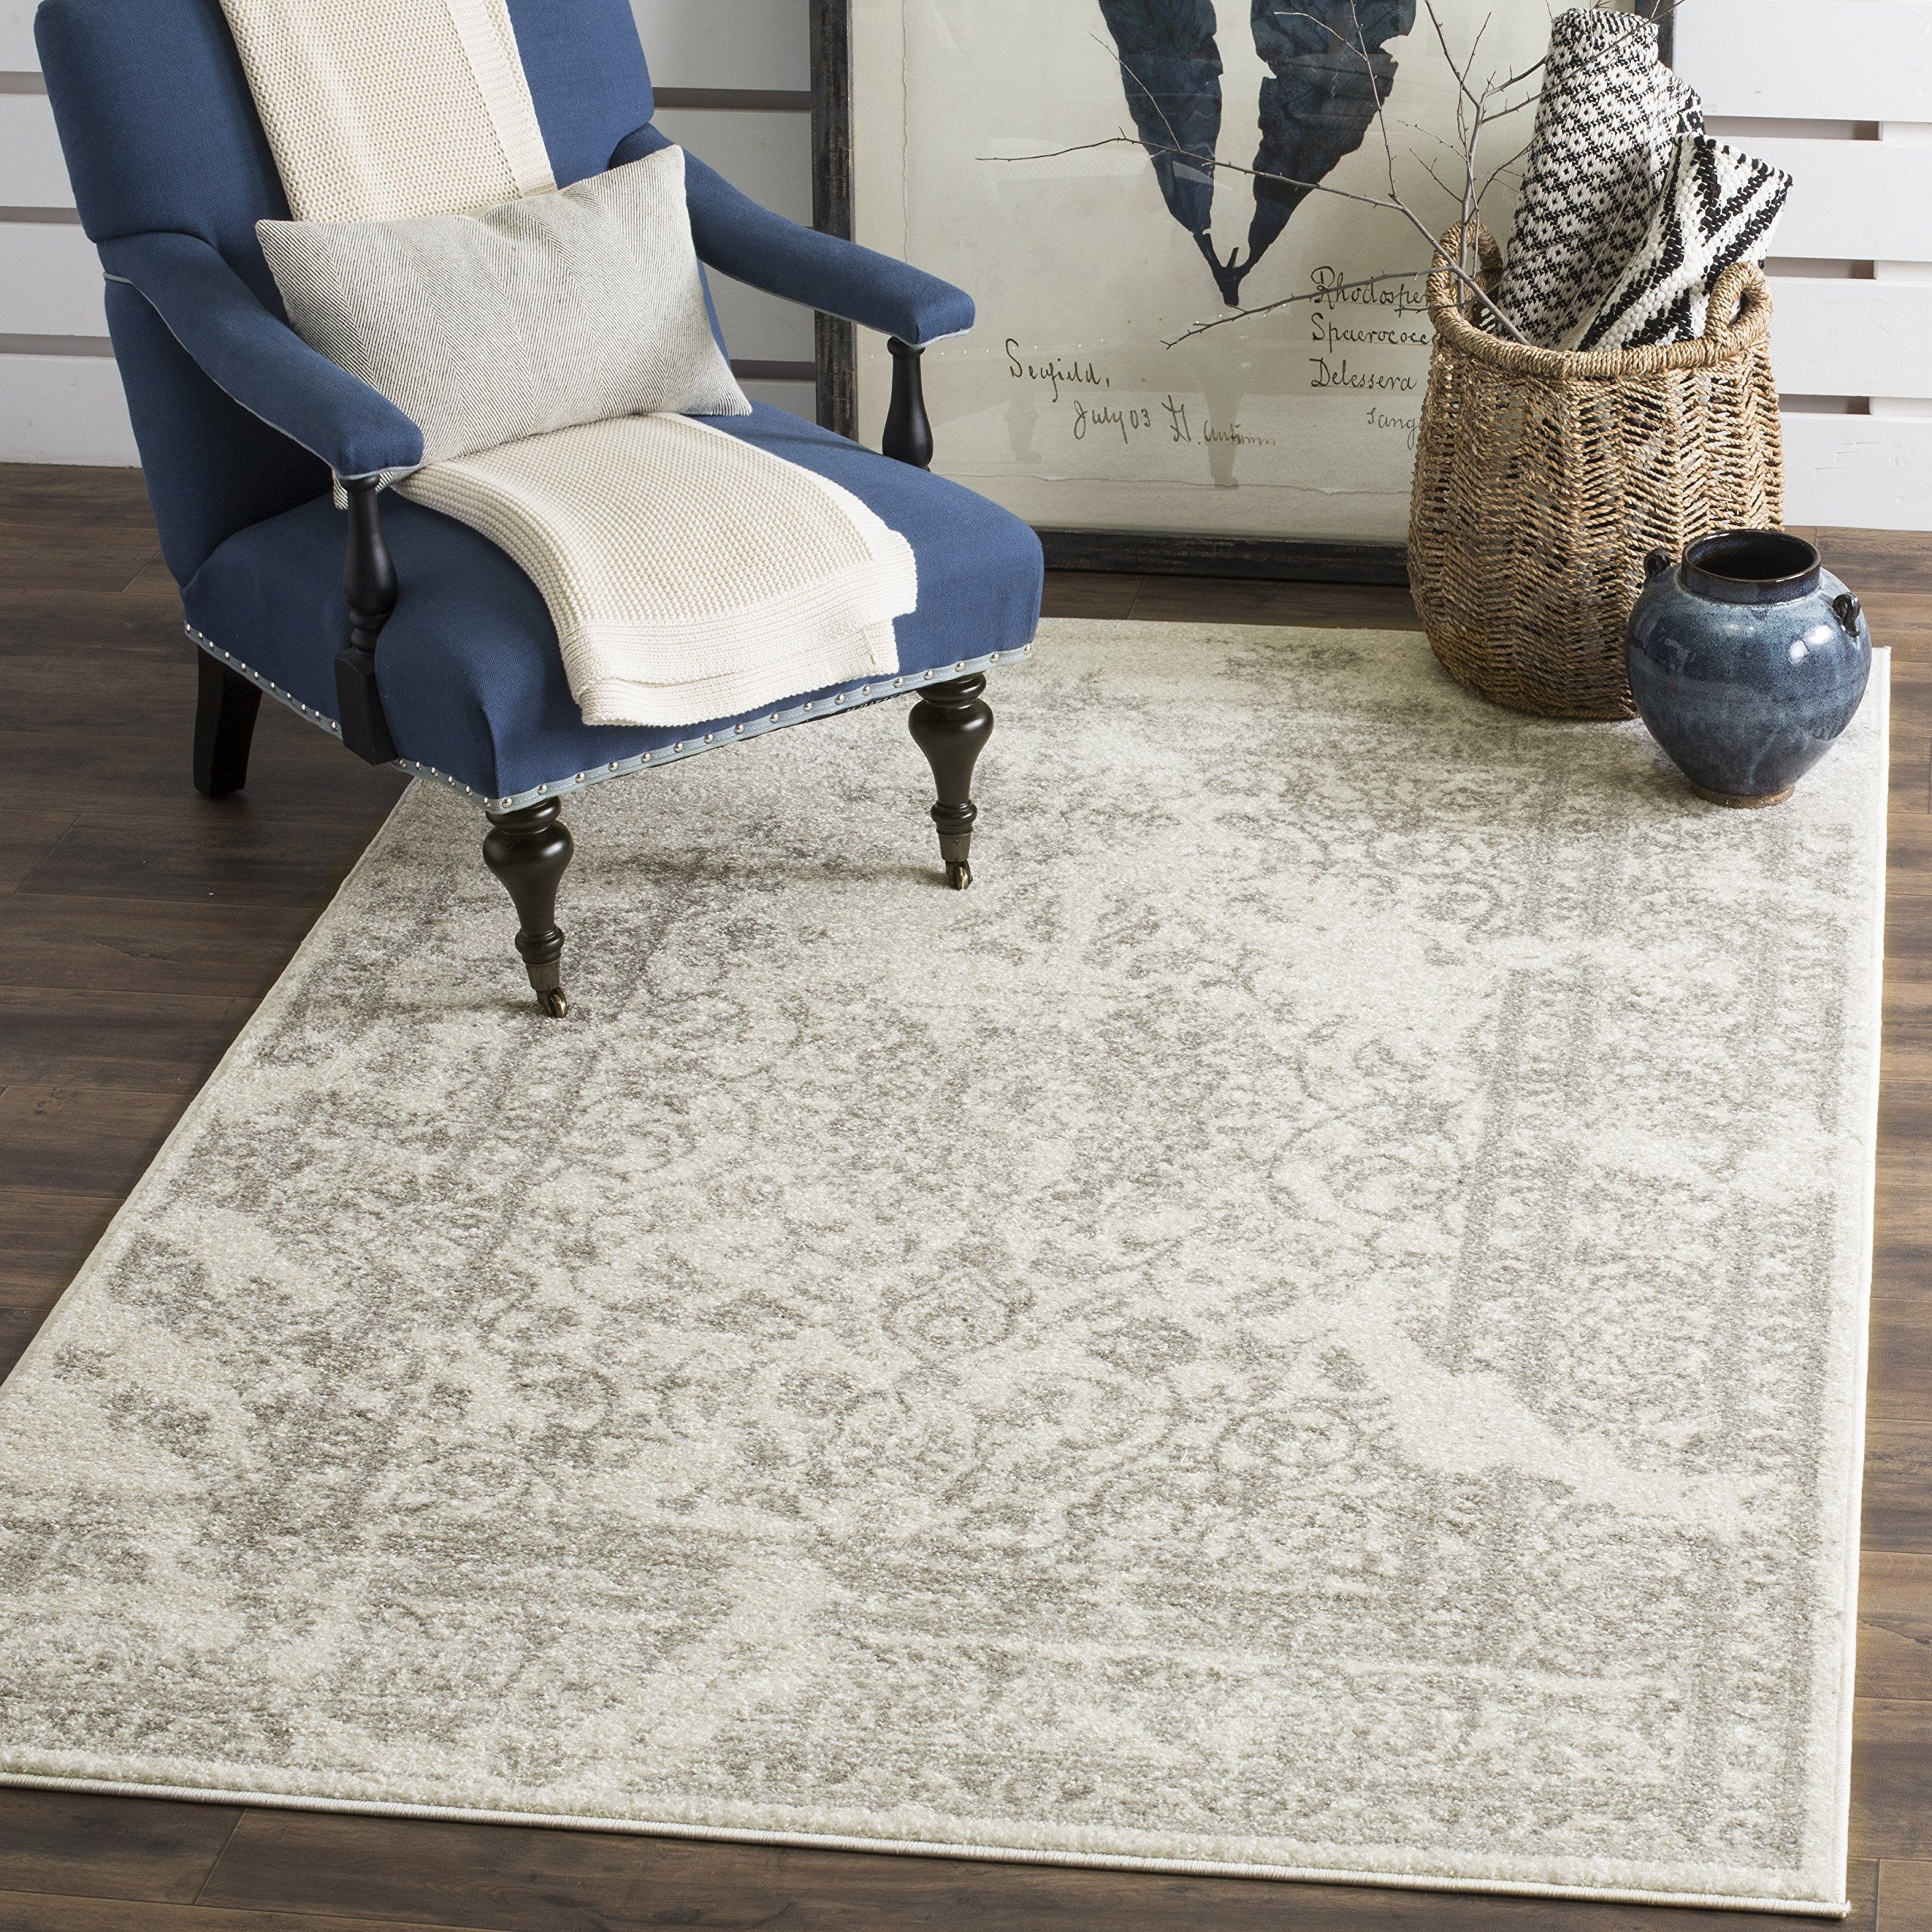 Safavieh Adirondack Collection ADR101B Ivory and Silver Oriental Vintage Distressed Area Rug (8' x 10') by Safavieh